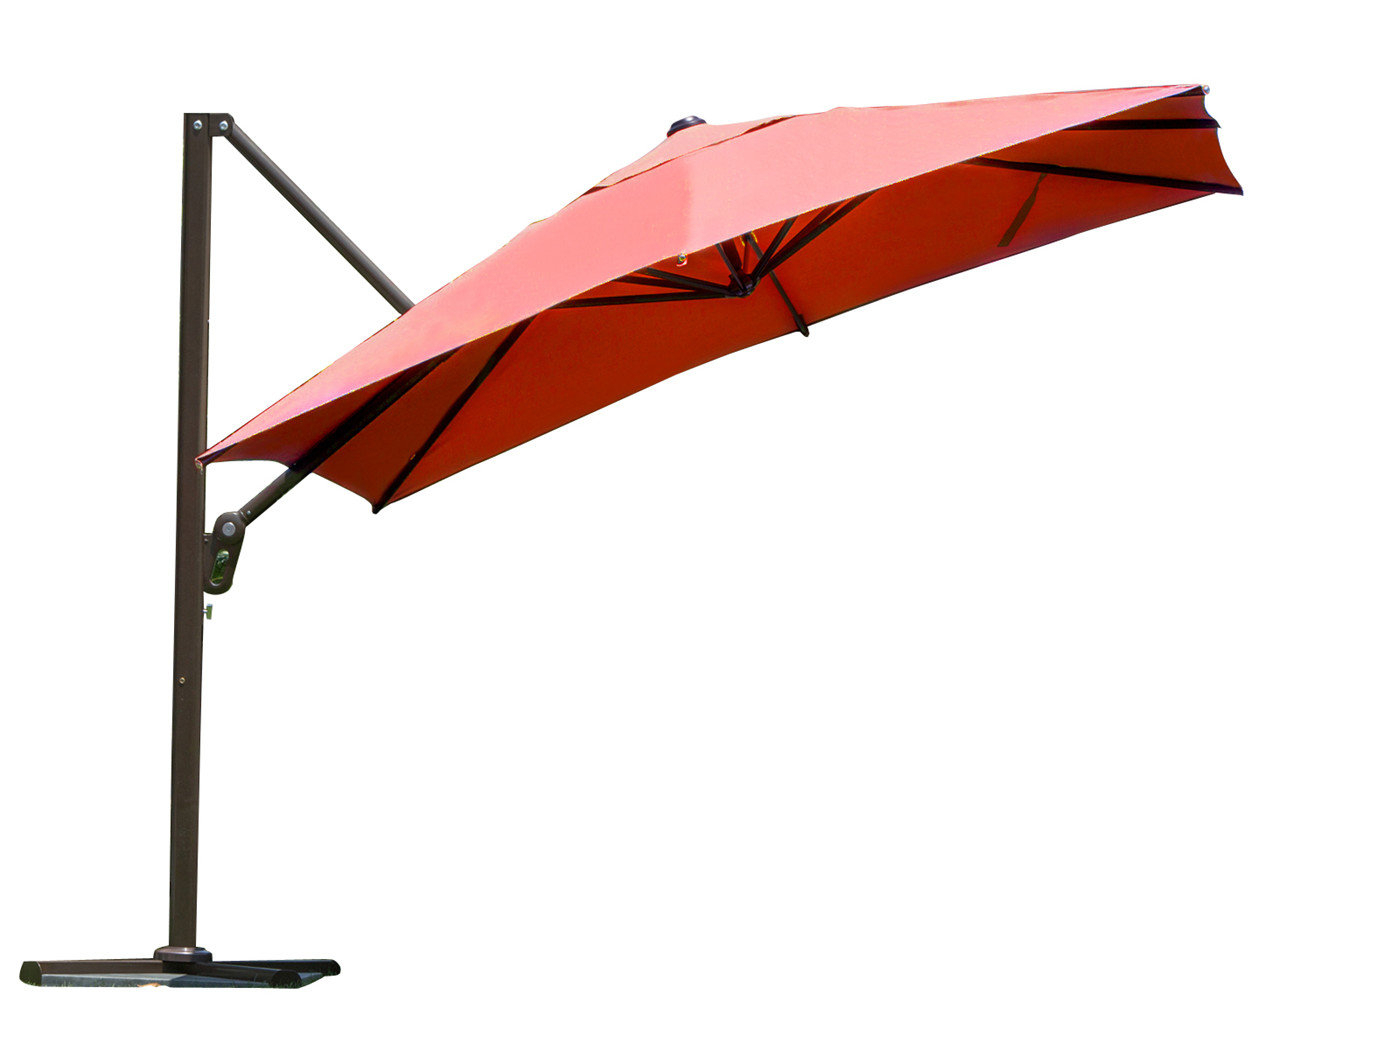 Most Recent 9' Square Cantilever Umbrella Intended For Maidste Square Cantilever Umbrellas (View 10 of 20)